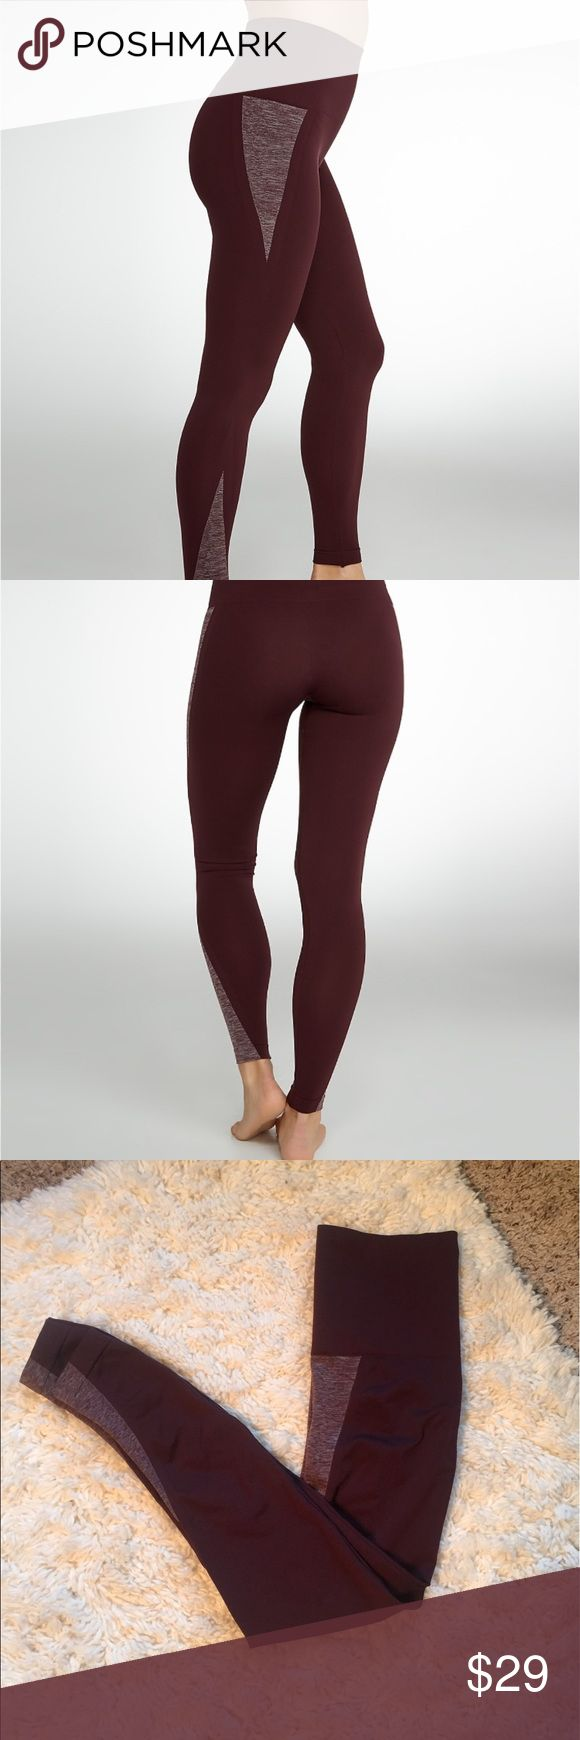 Spanx Red Hot Label Assets Heather Pop Leggings Flattering and super comfortable Leggings. Fall 2016 style sales sample, never worn. NWOT! Style # 20081R Color is pop burgundy size is Medium. See pictures for all measurements. Pet and Smoke Free! 92% Nylon 8% Spandex SPANX Pants Leggings